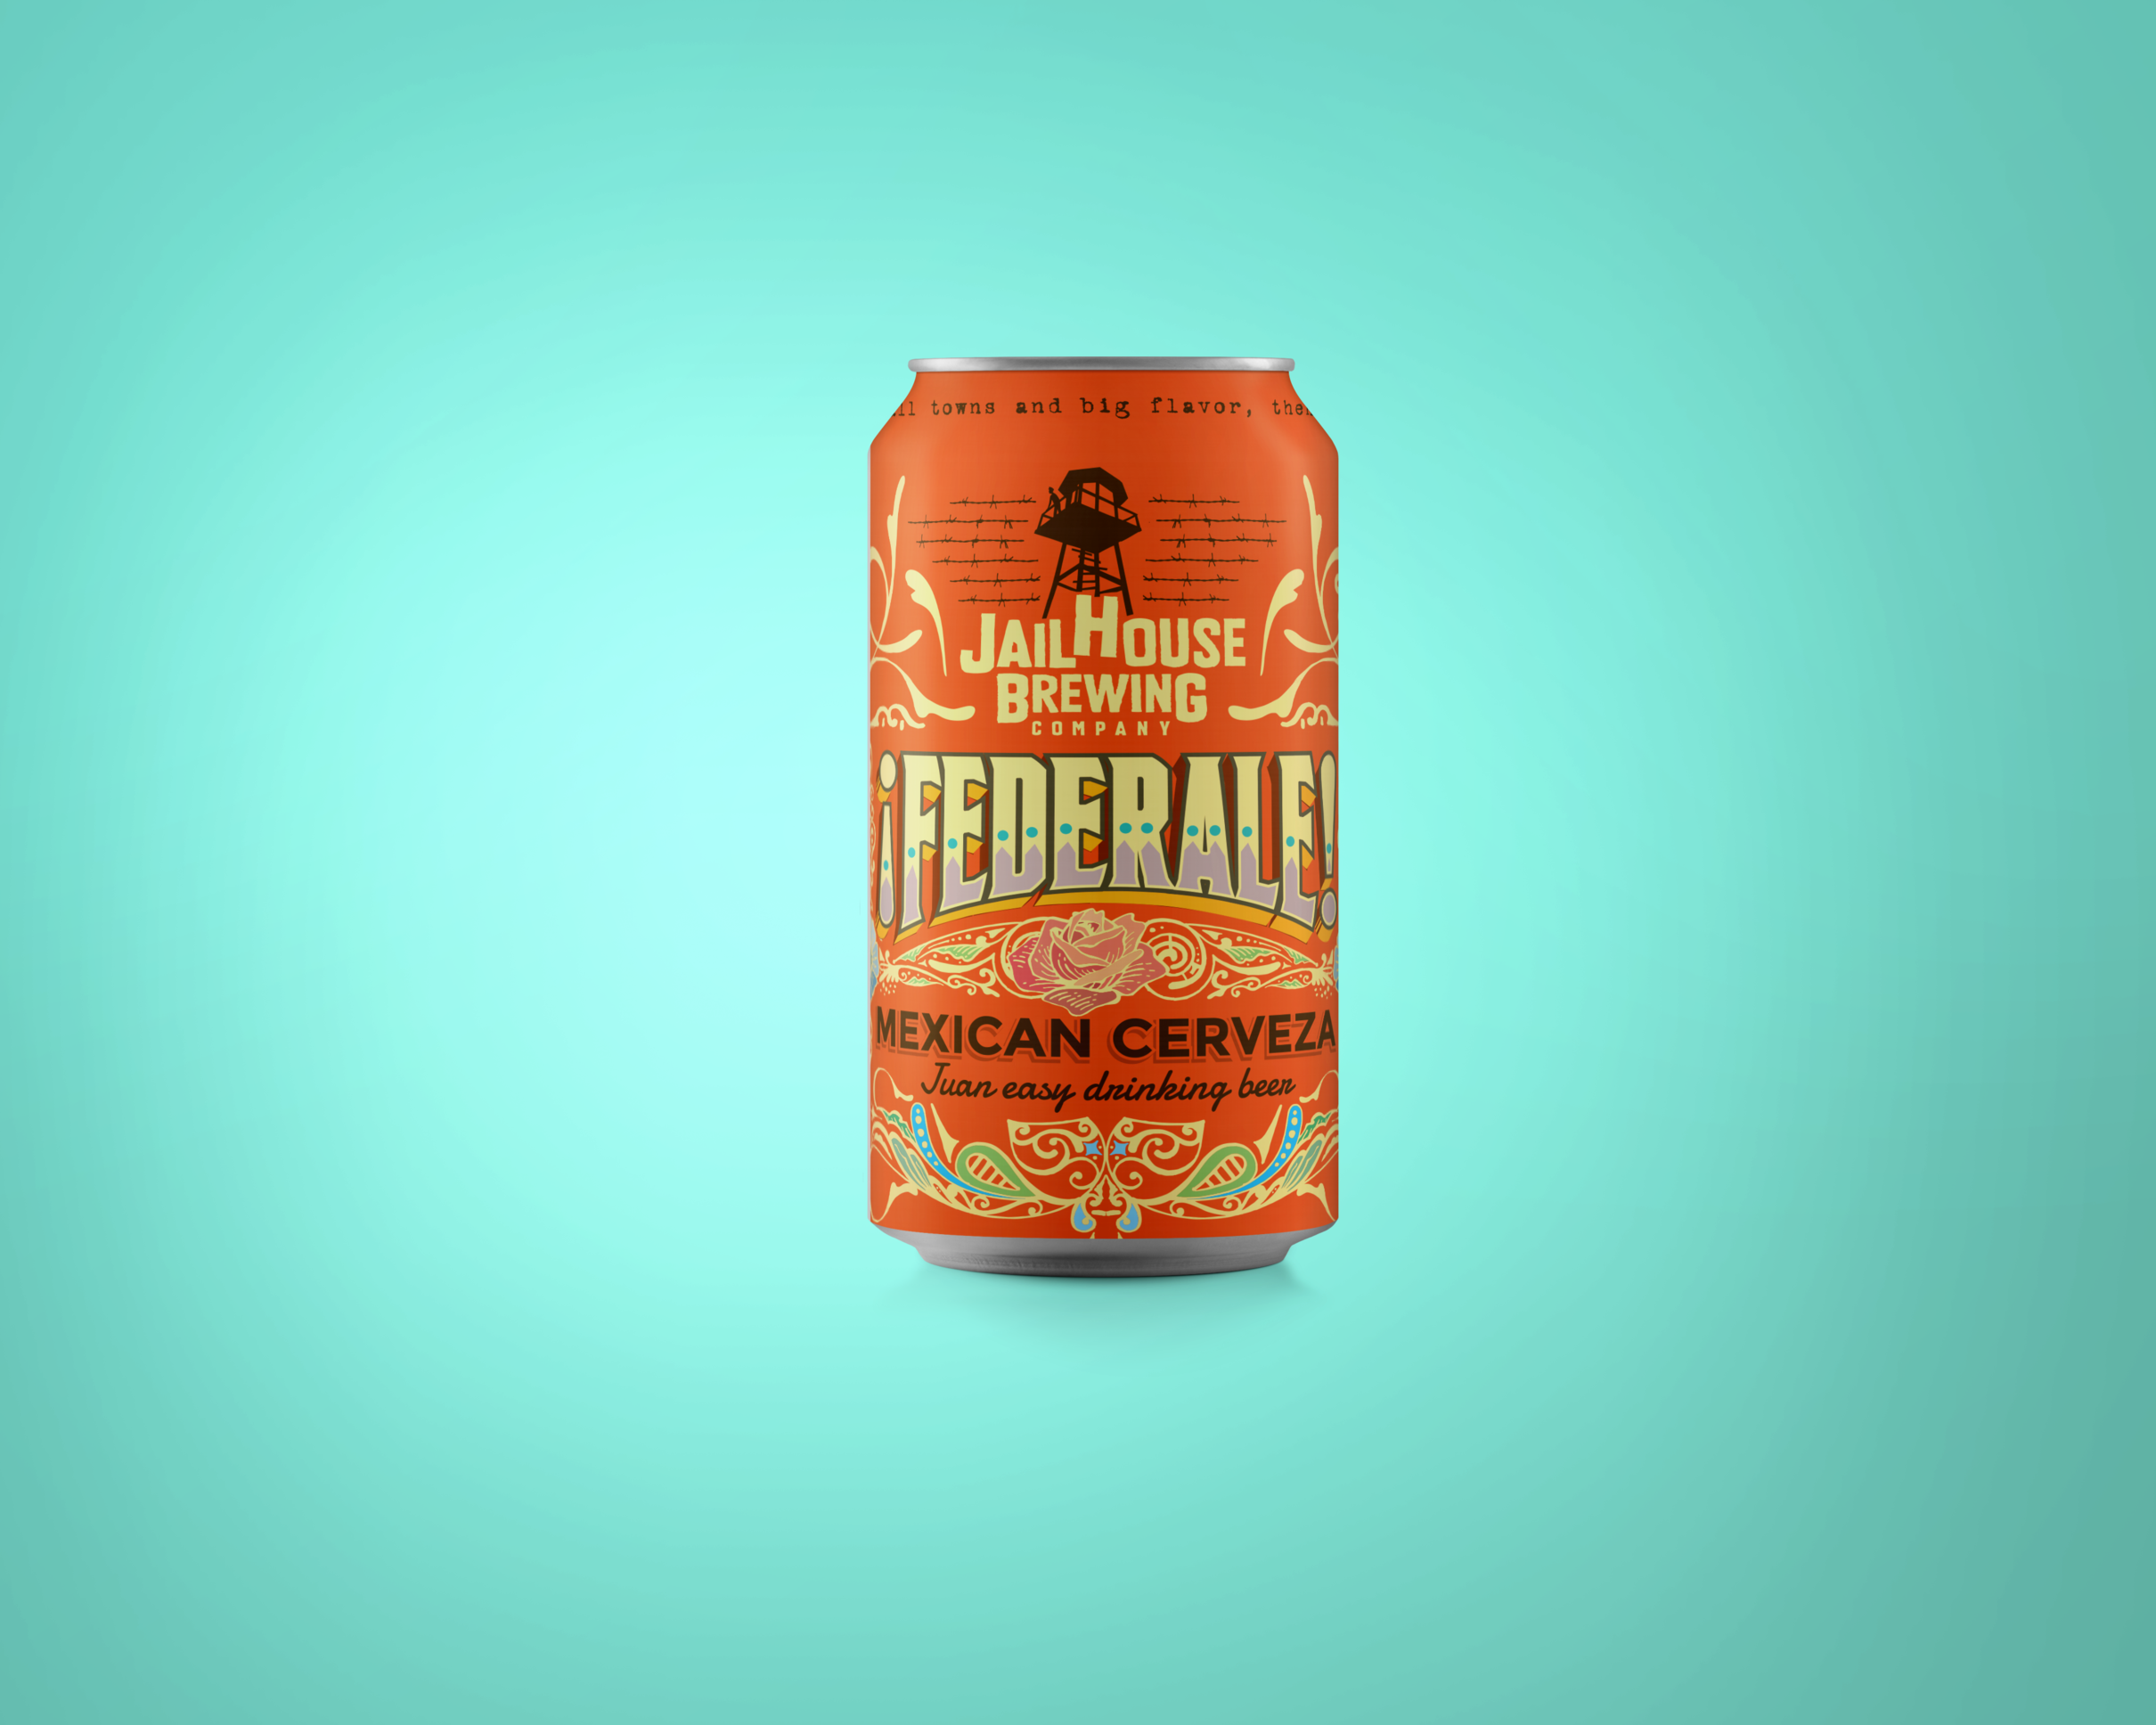 FEDERALE   MEXICAN-STYLE LAGER | 4.8% | 15 IBU  CLEAN | CORN SWEETNESS | SUBTLE FRUIT | EASY DRINKING